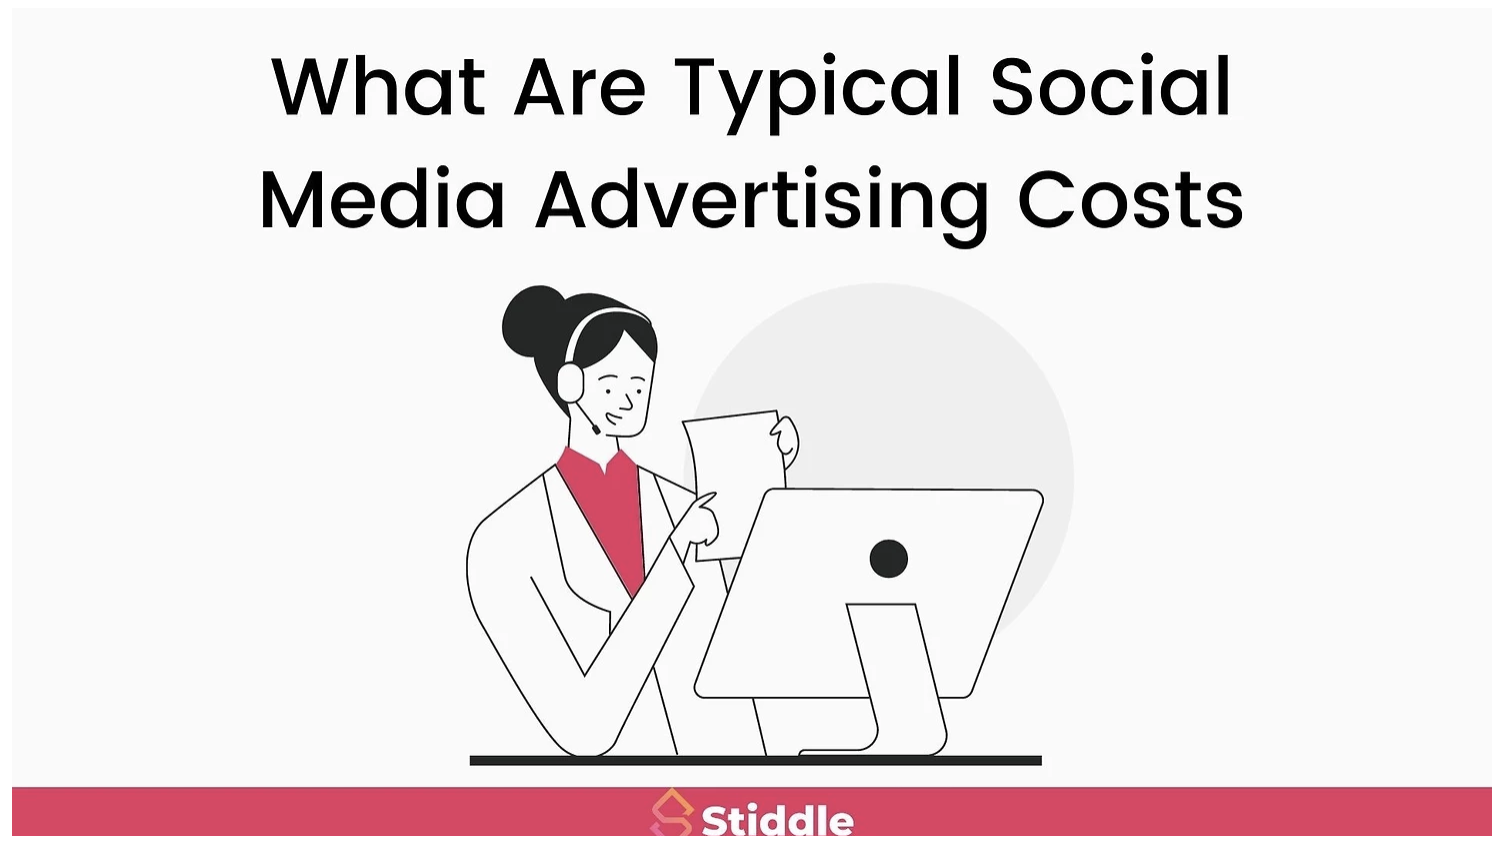 The Typical Social Media Advertising Costs